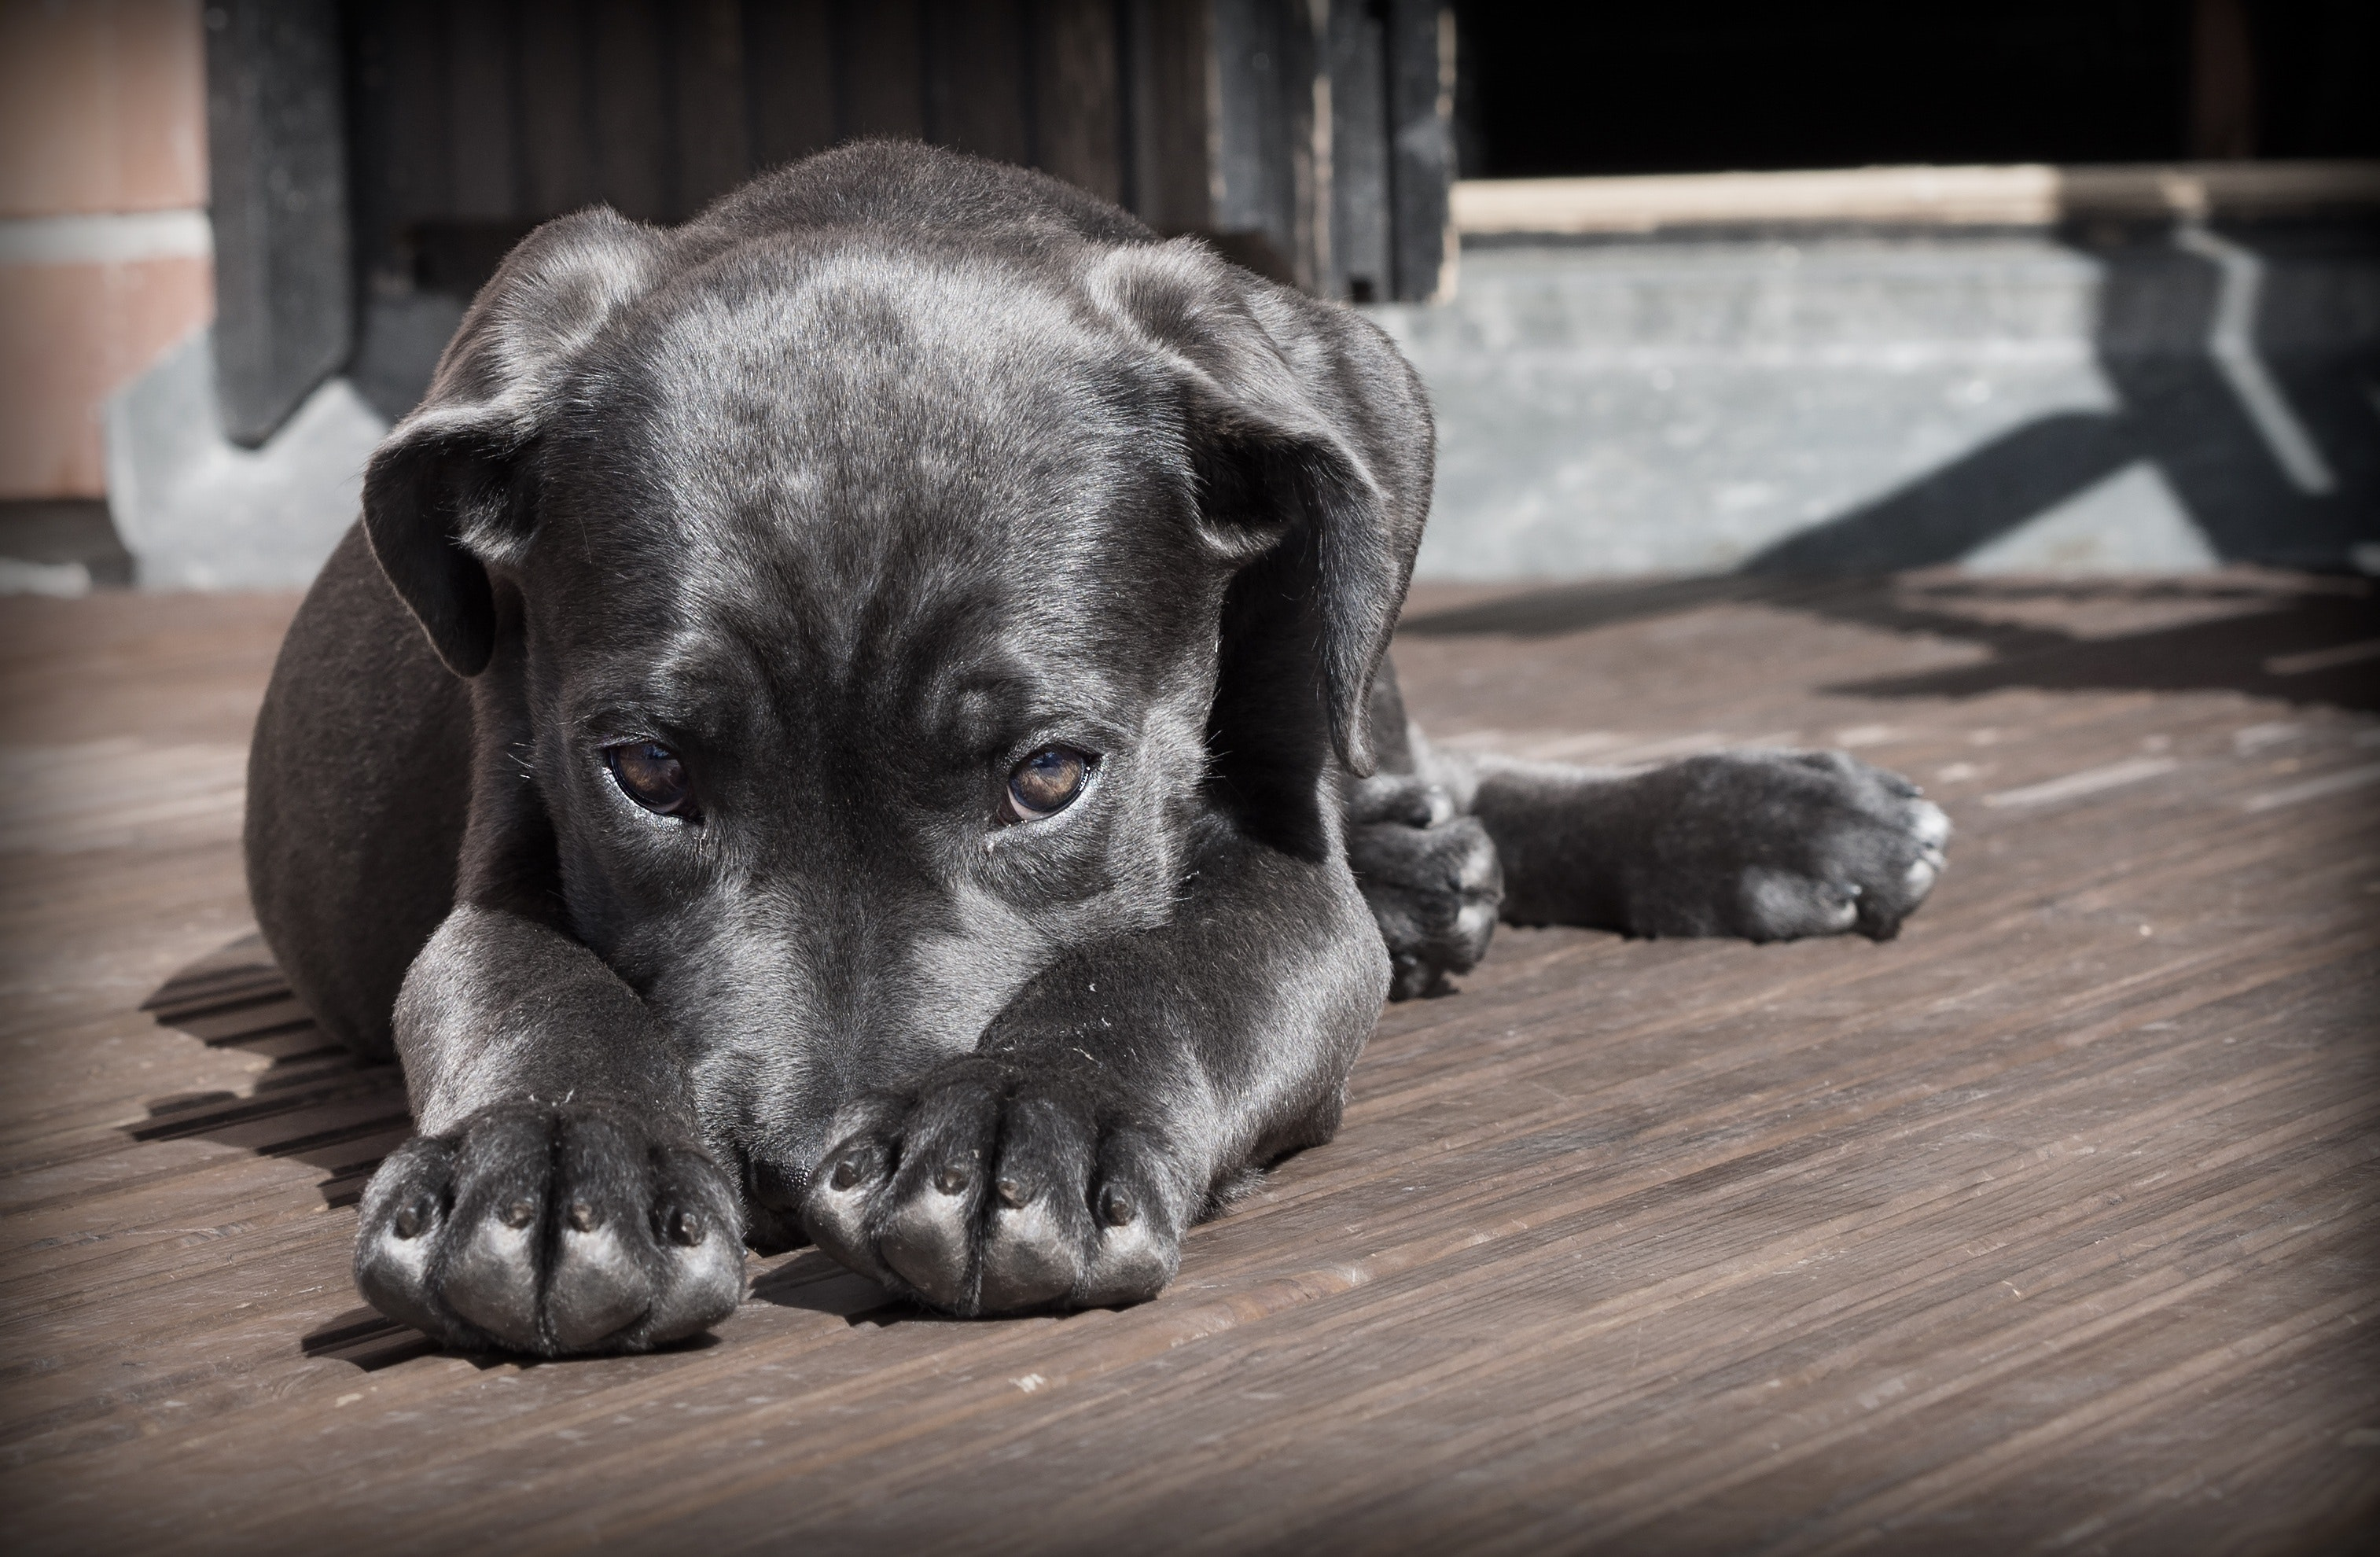 Fears and phobias in dogs: How to help them overcome